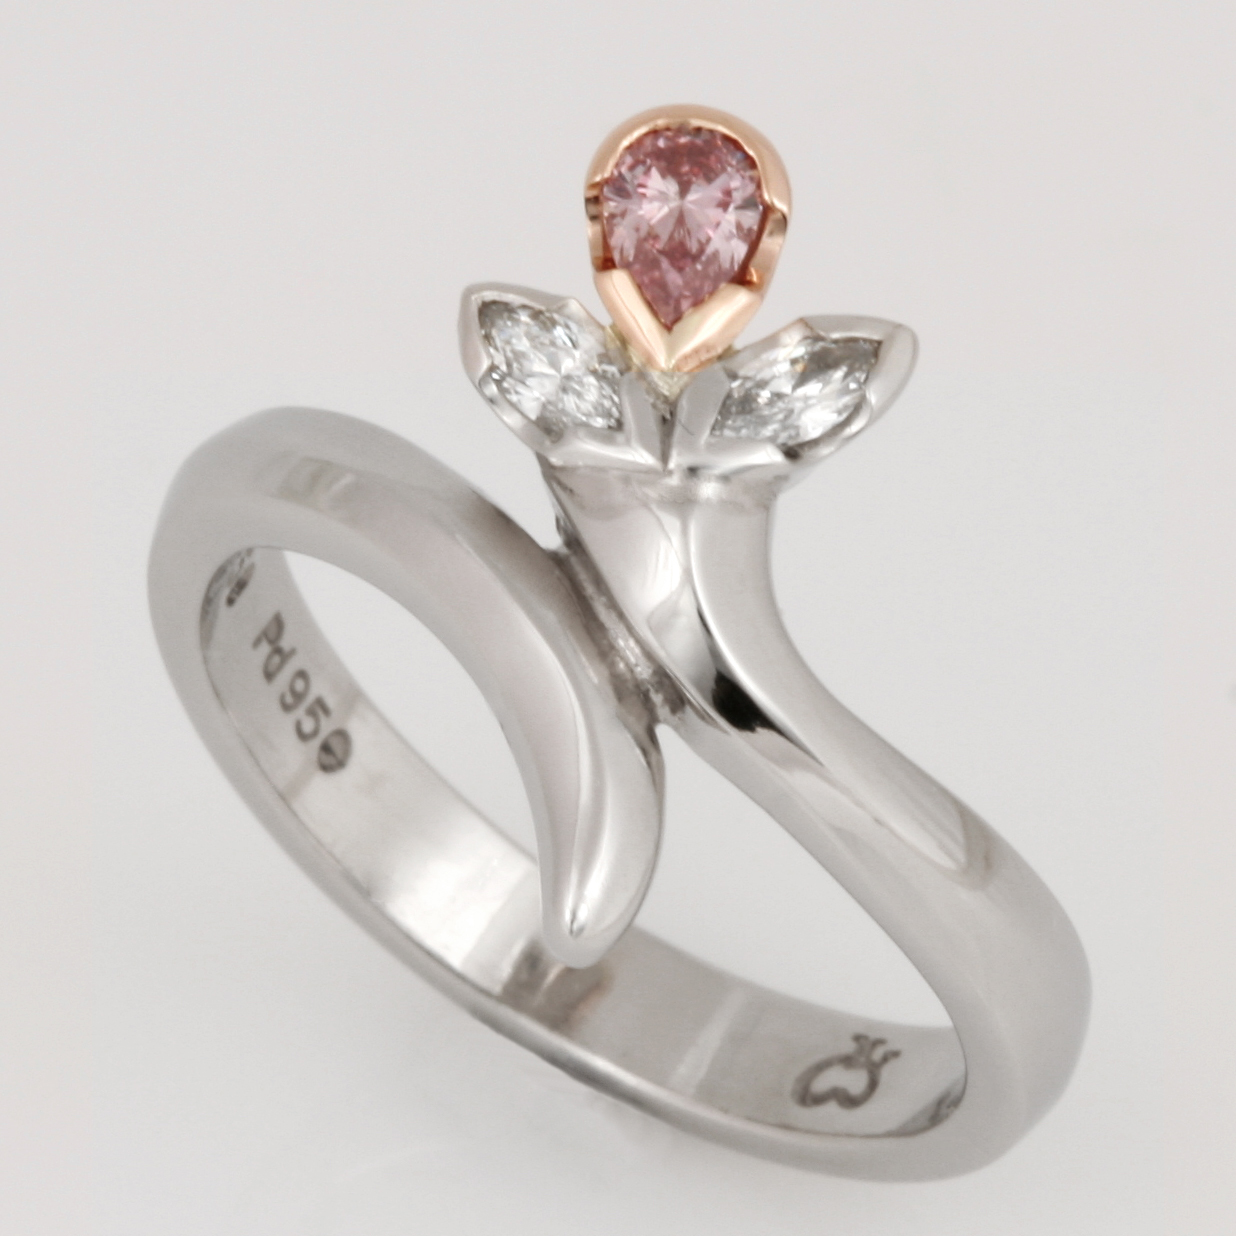 Handmade ladies palladium and 18ct rose gold ring featuring pink and white diamonds